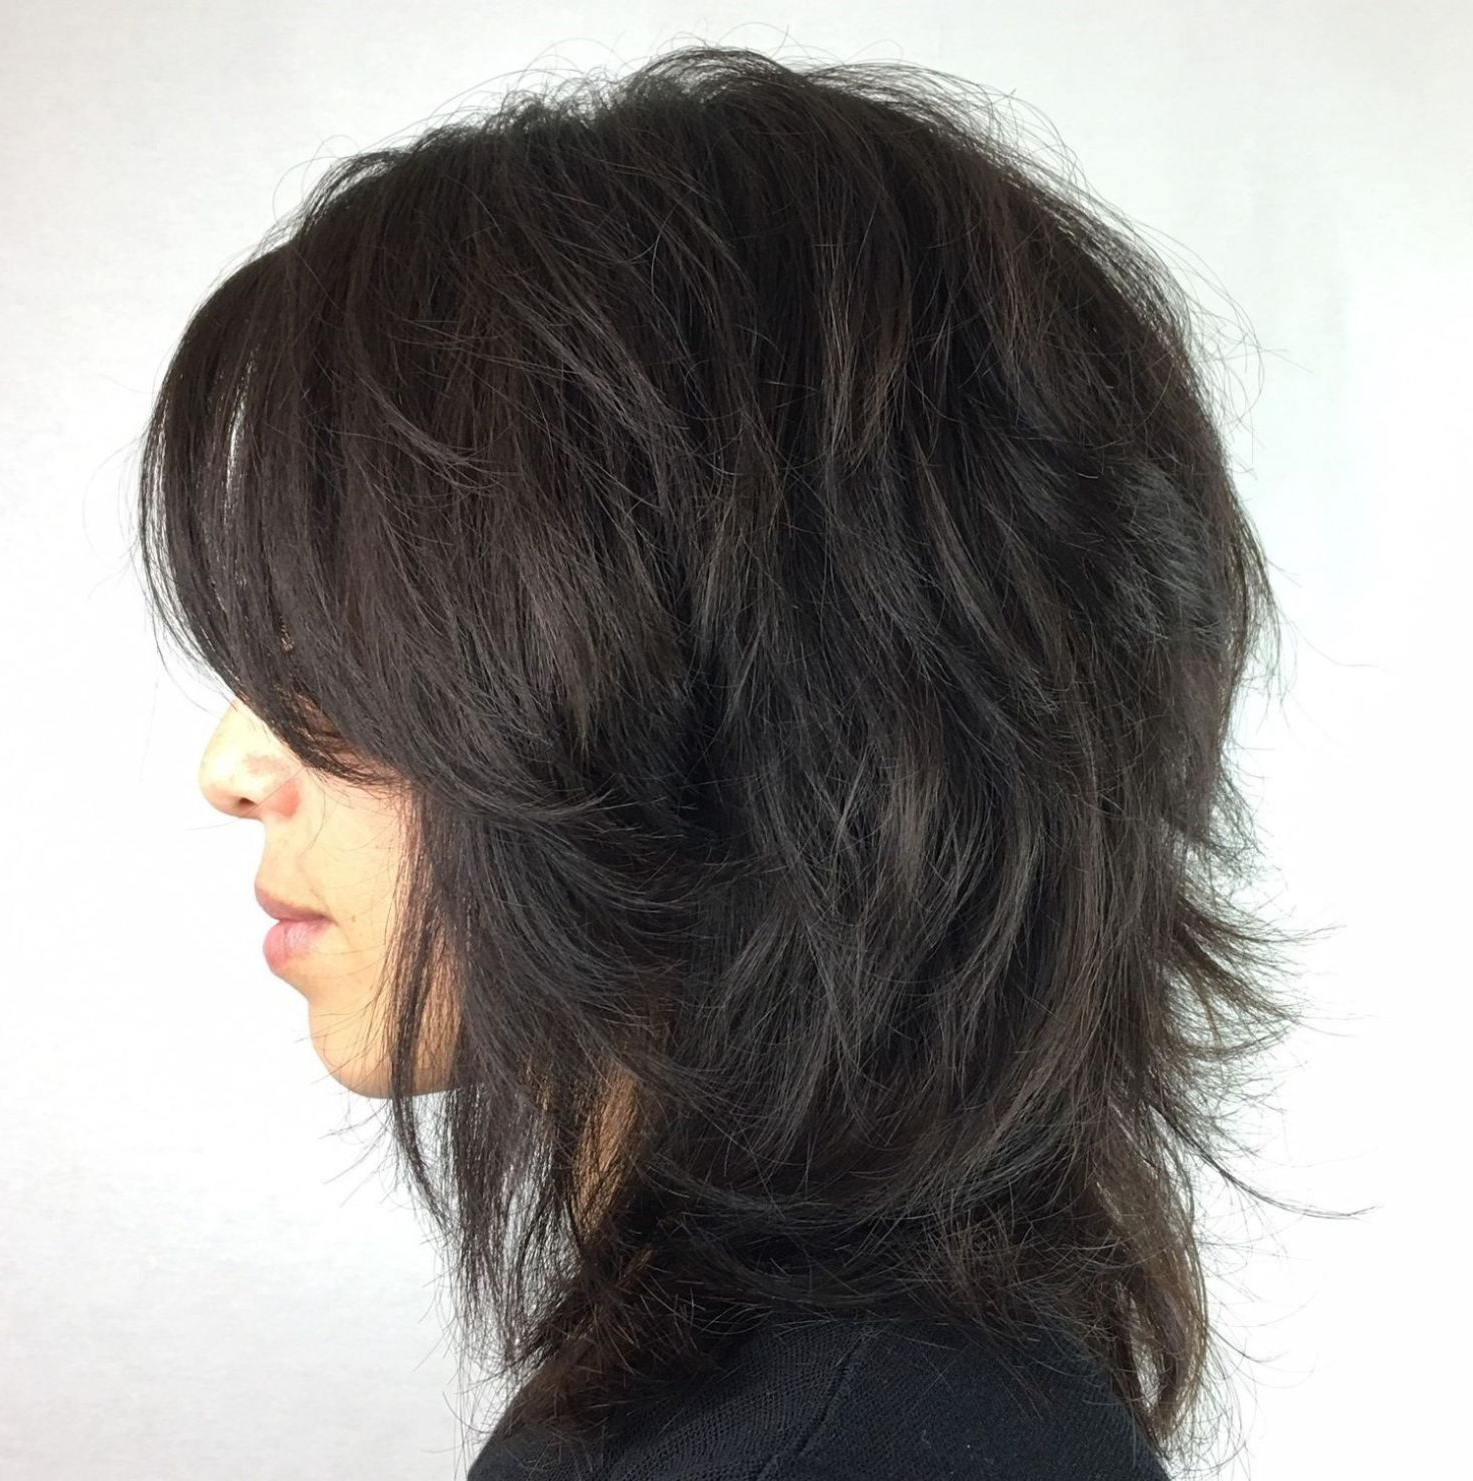 2019 Modern Shaggy Asian Hairstyles With Hairstyles : Shag Haircuts For Curly Hair Splendid 50 Most (View 10 of 20)